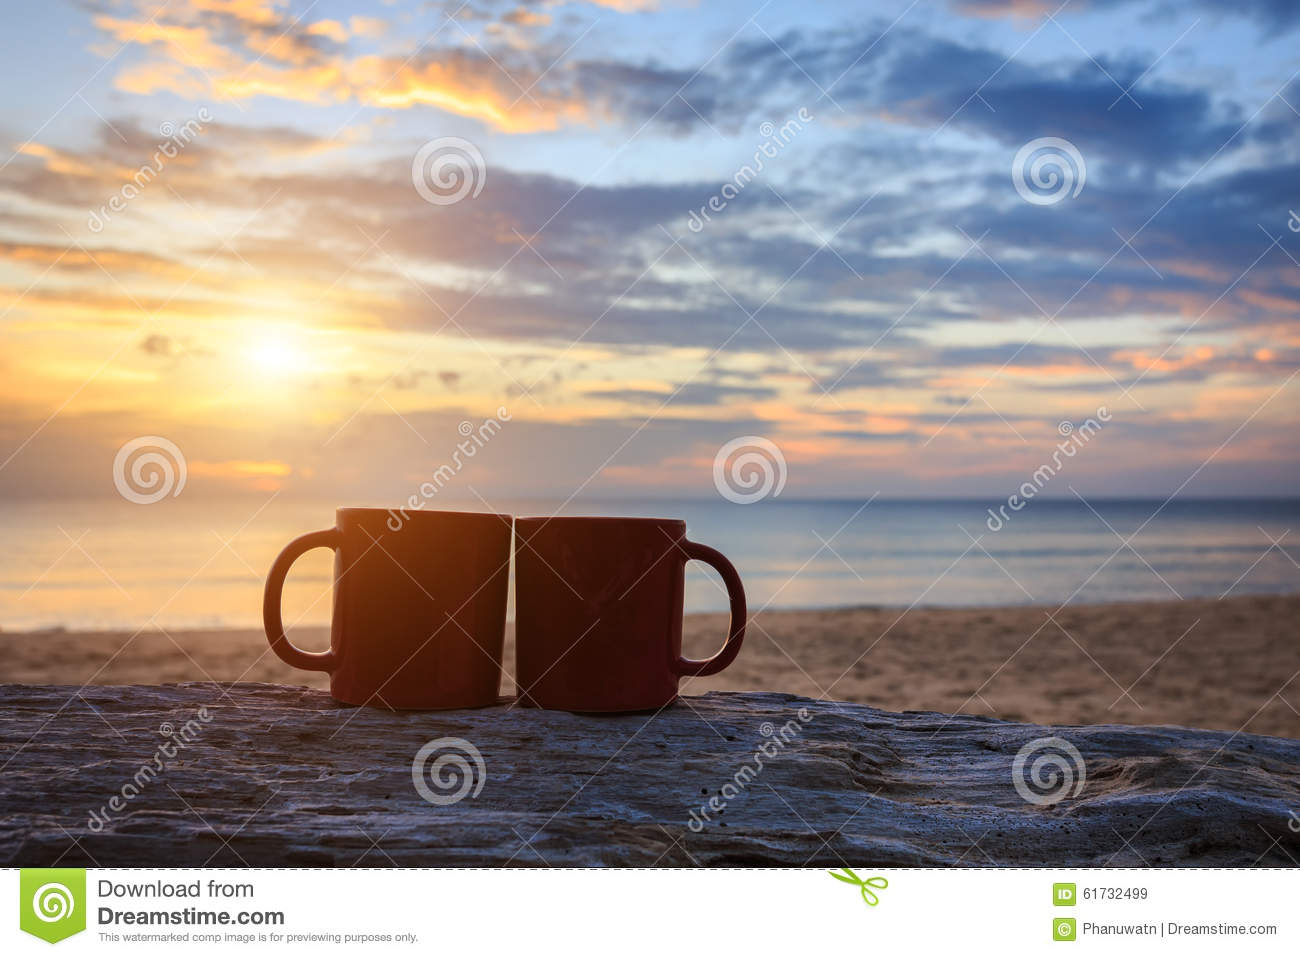 Coffee Cup On Wood Log At Sunset Or Sunrise Beach Stock